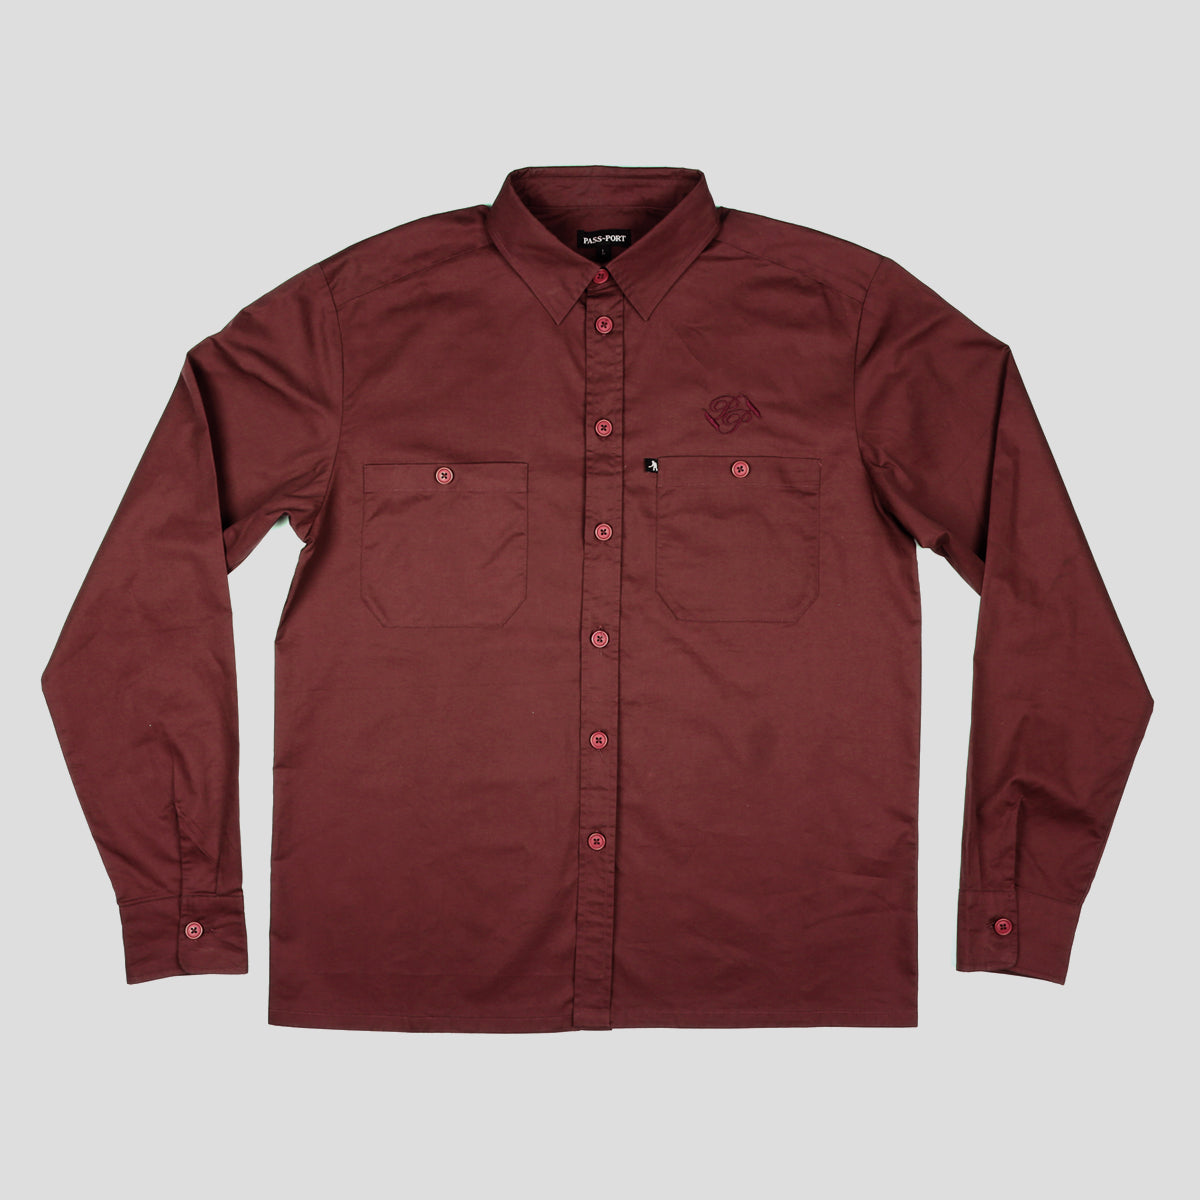 "PASS~PORT ""WORKERS BANNER"" L/S SHIRT BURGUNDY"